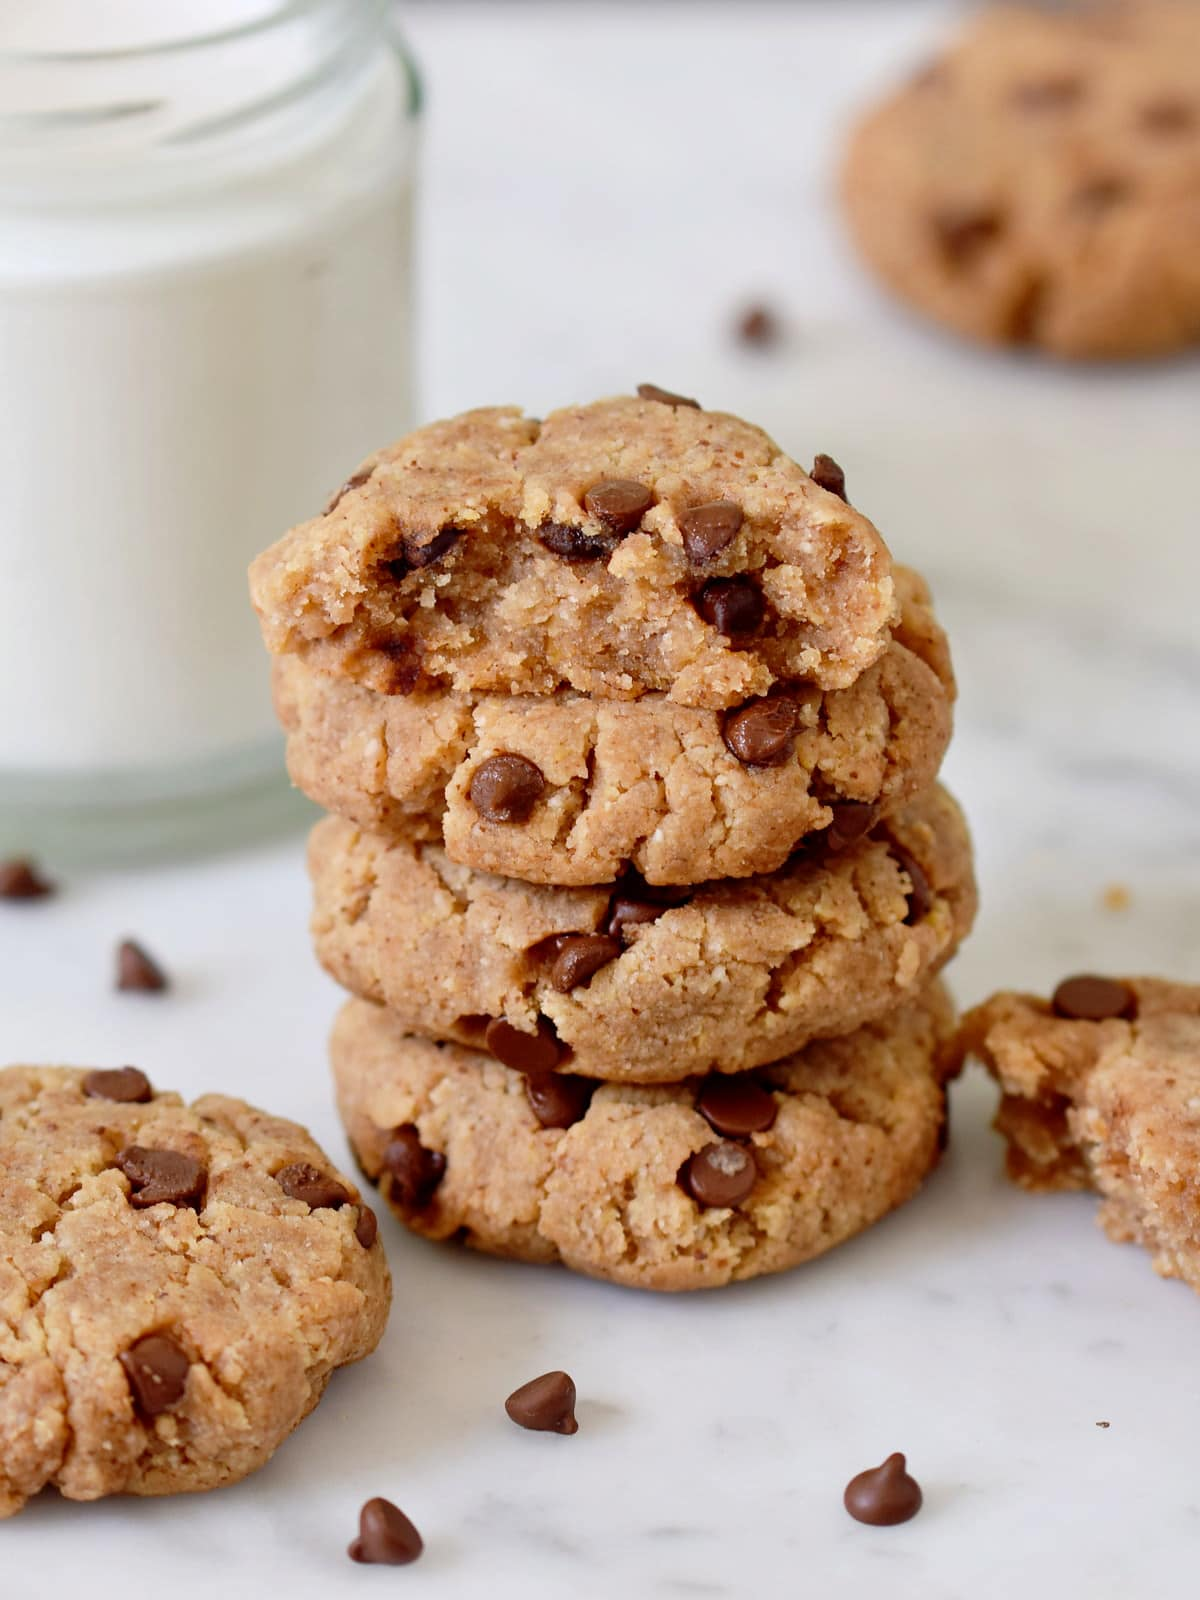 a tower of soft peanut butter cookies with chocolate chips